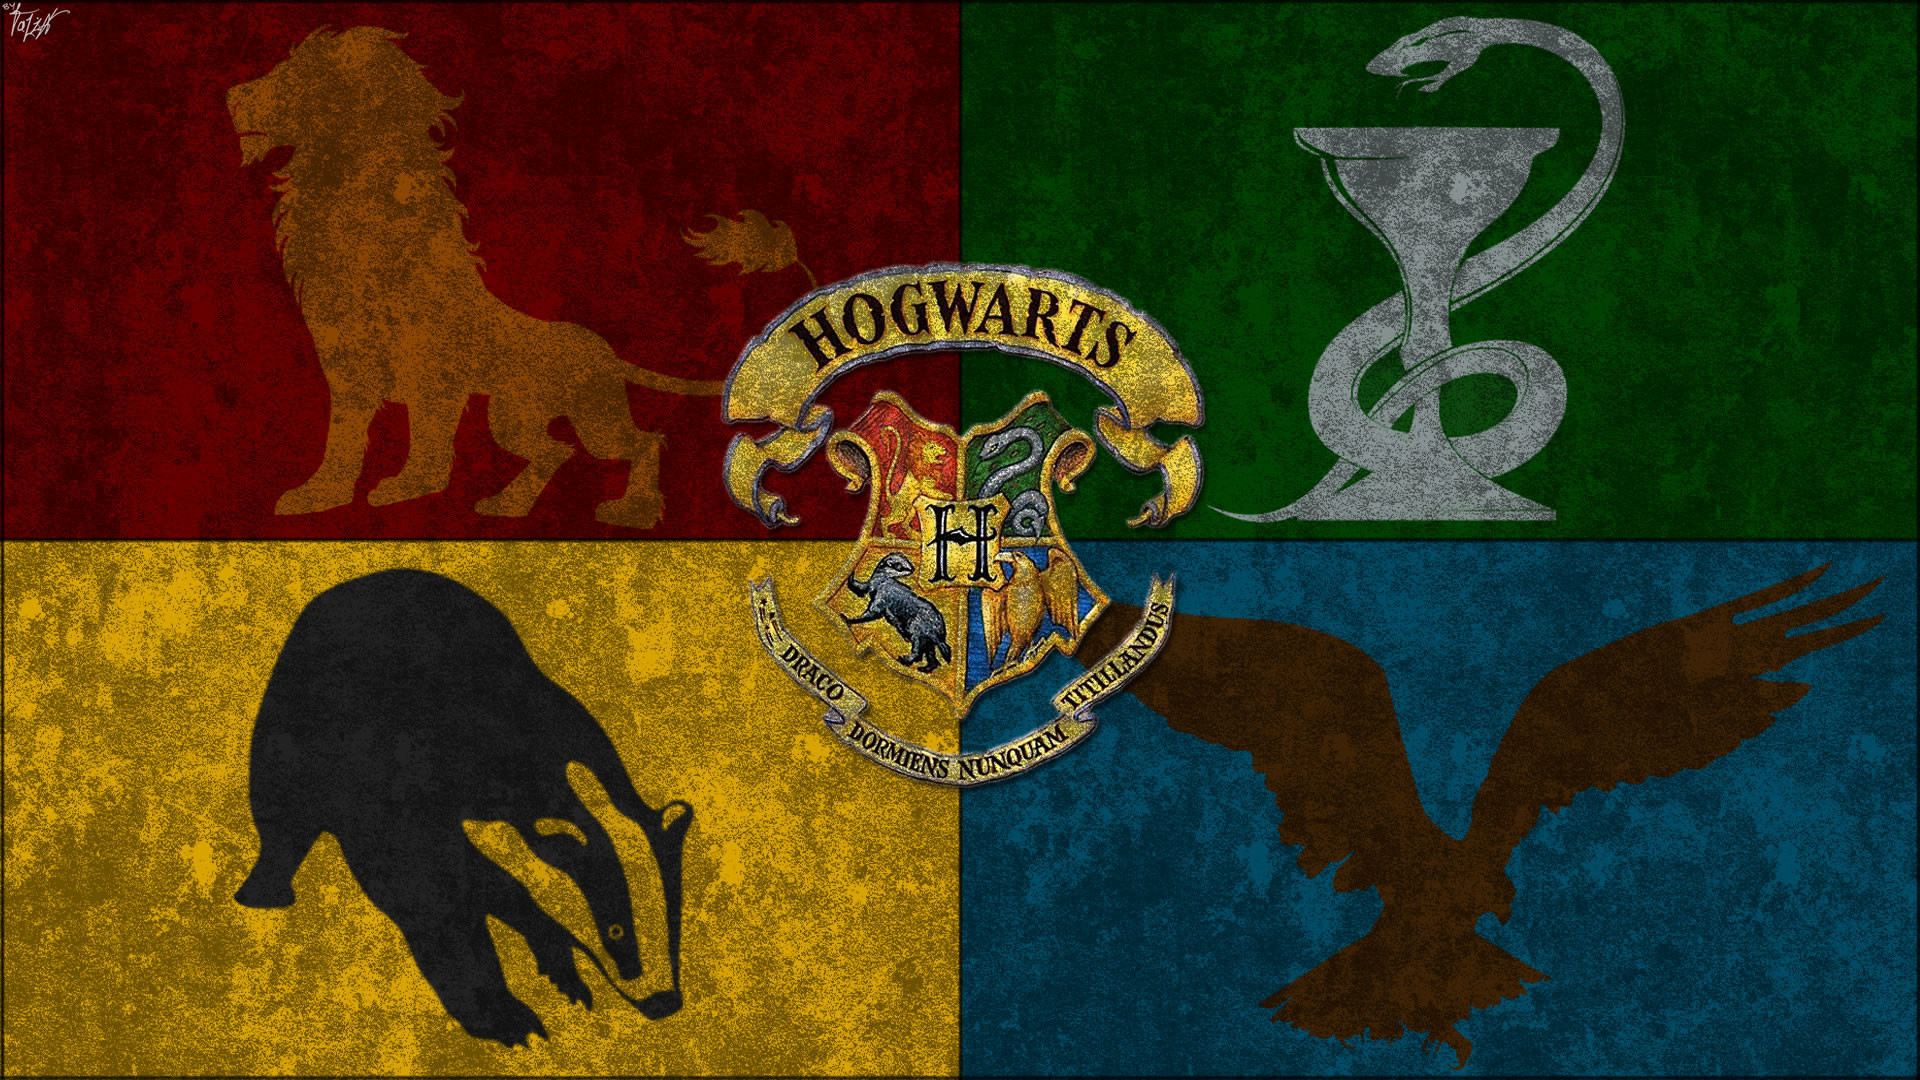 Res: 1920x1080, Hogwarts house wallpaper all by theladyavatar-d5fp057.jpg .